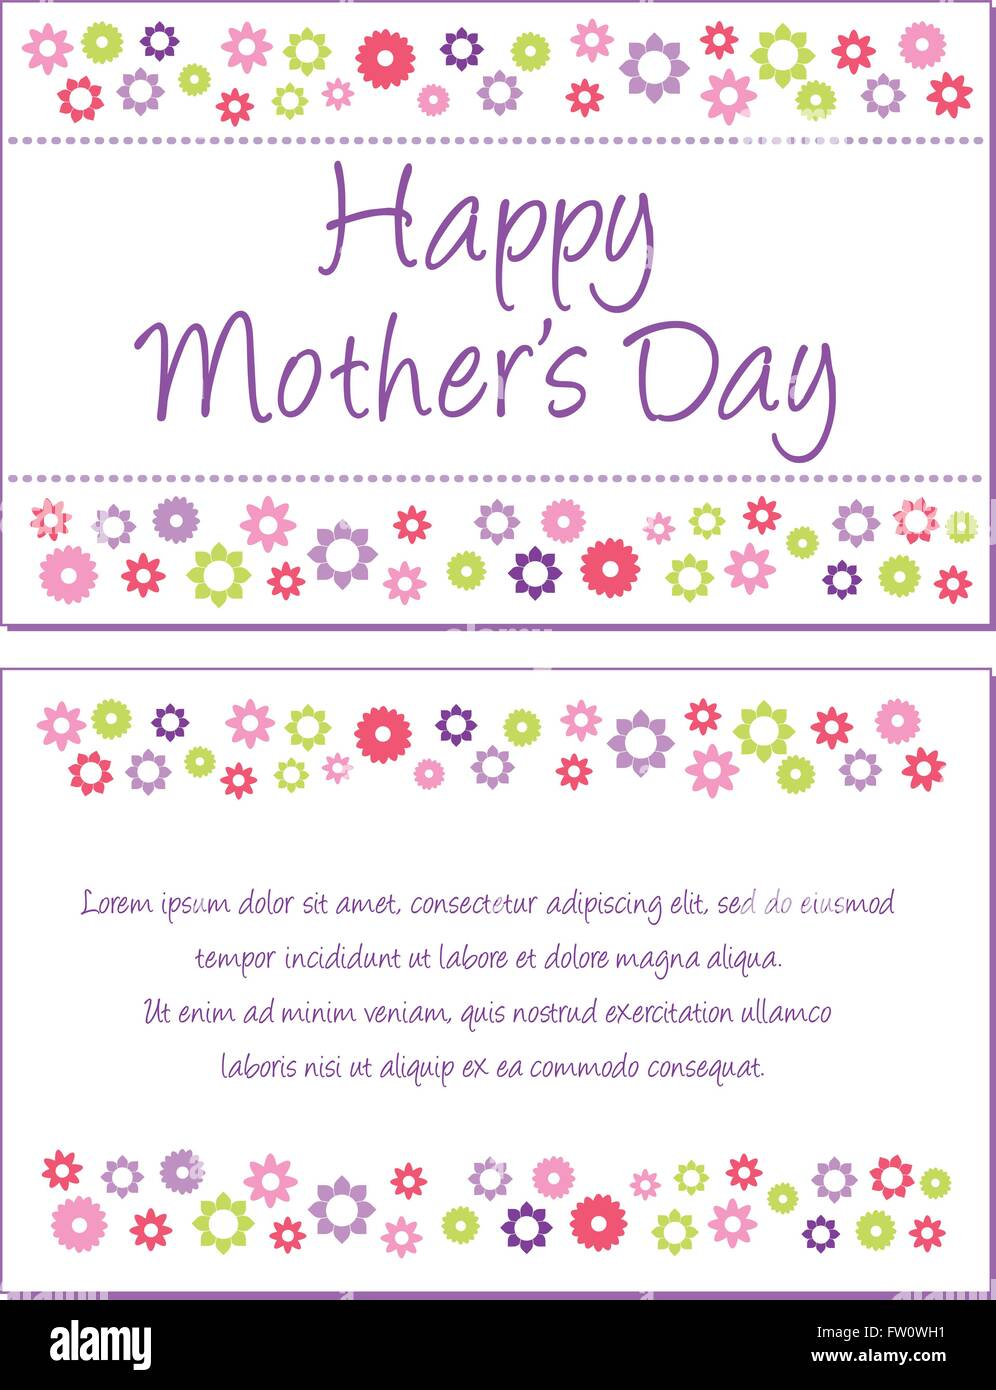 Enjoyable Happy Mothers Day Greeting Card Front And Back Illustration Birthday Cards Printable Opercafe Filternl